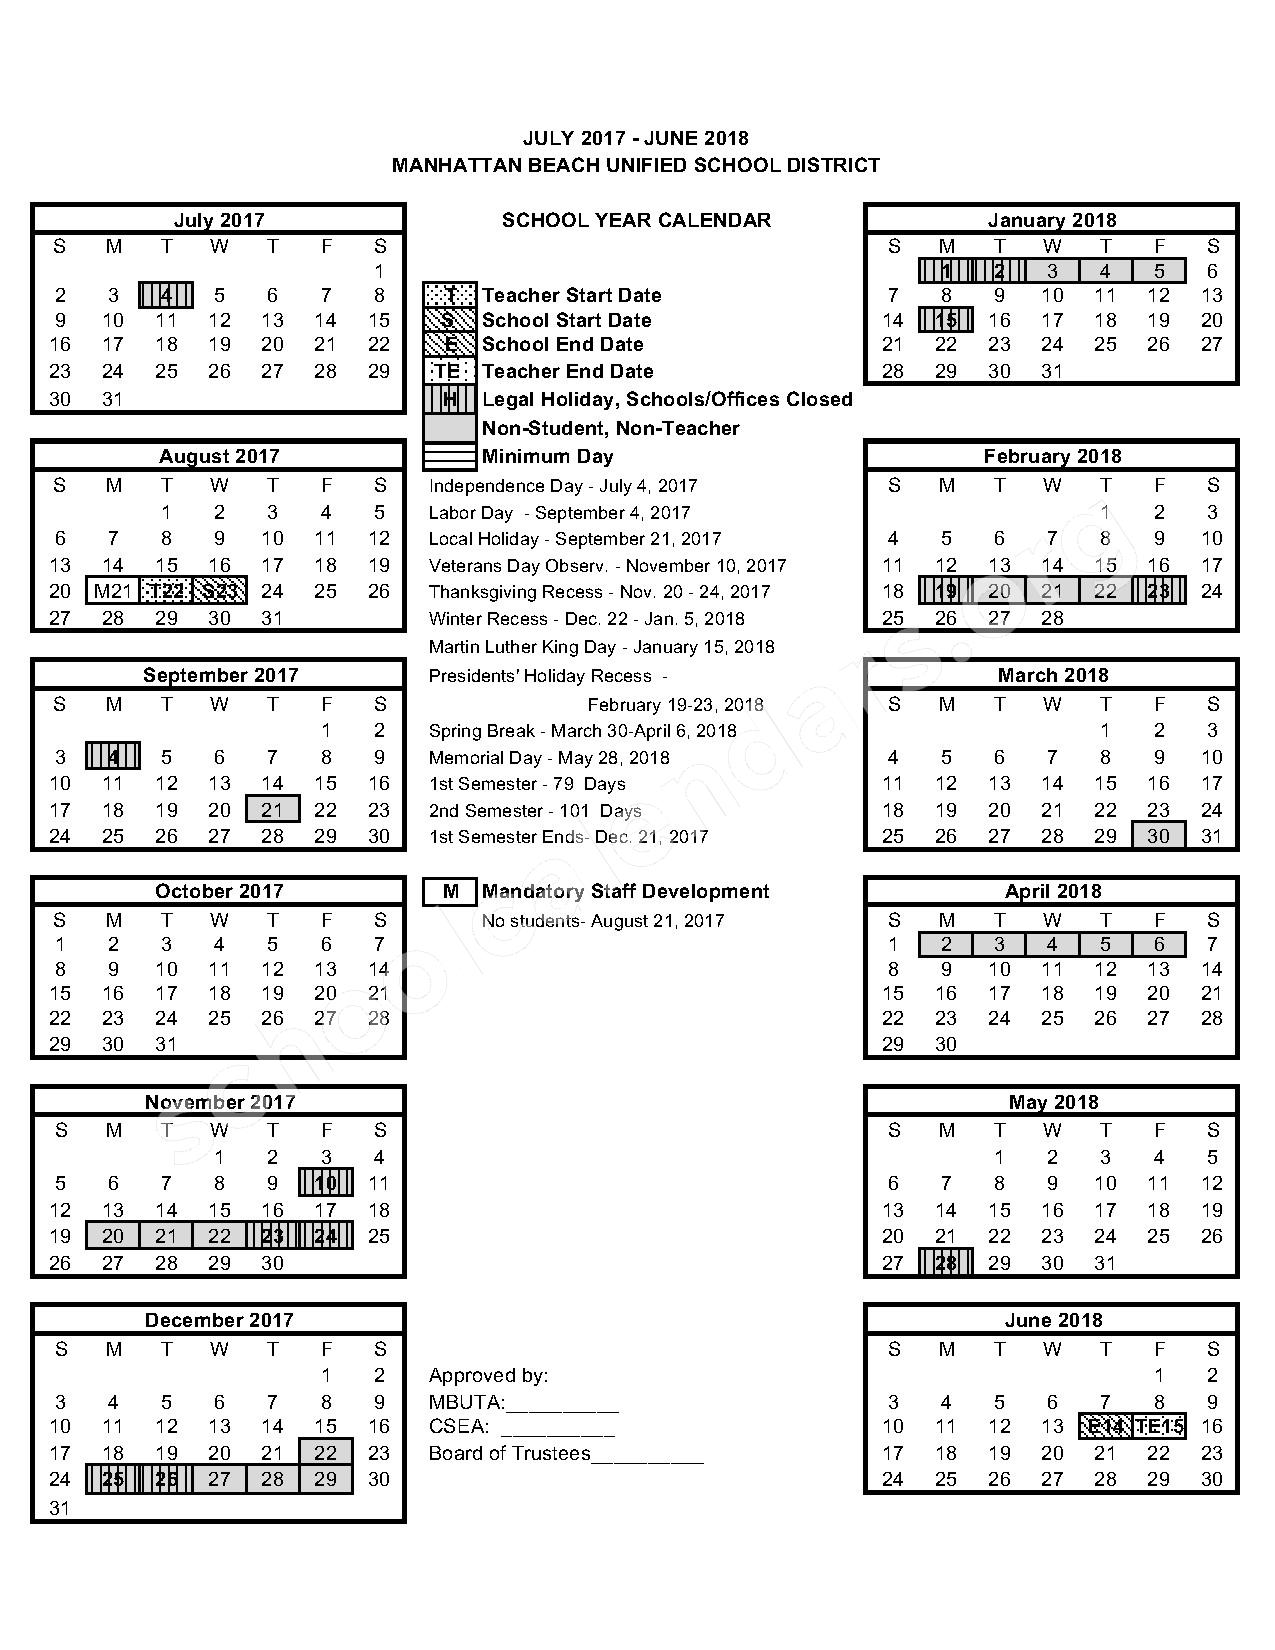 2017 - 2018 School Calendar – Manhattan Beach Unified School District – page 1